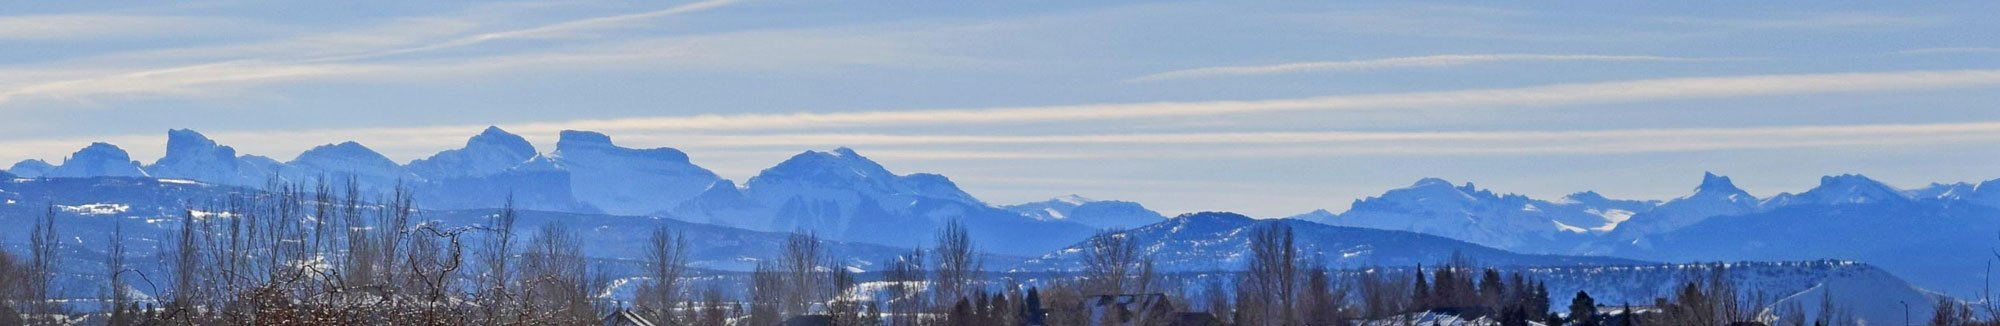 Search montrose real estate mls listings homes for sale cimarrons mountains